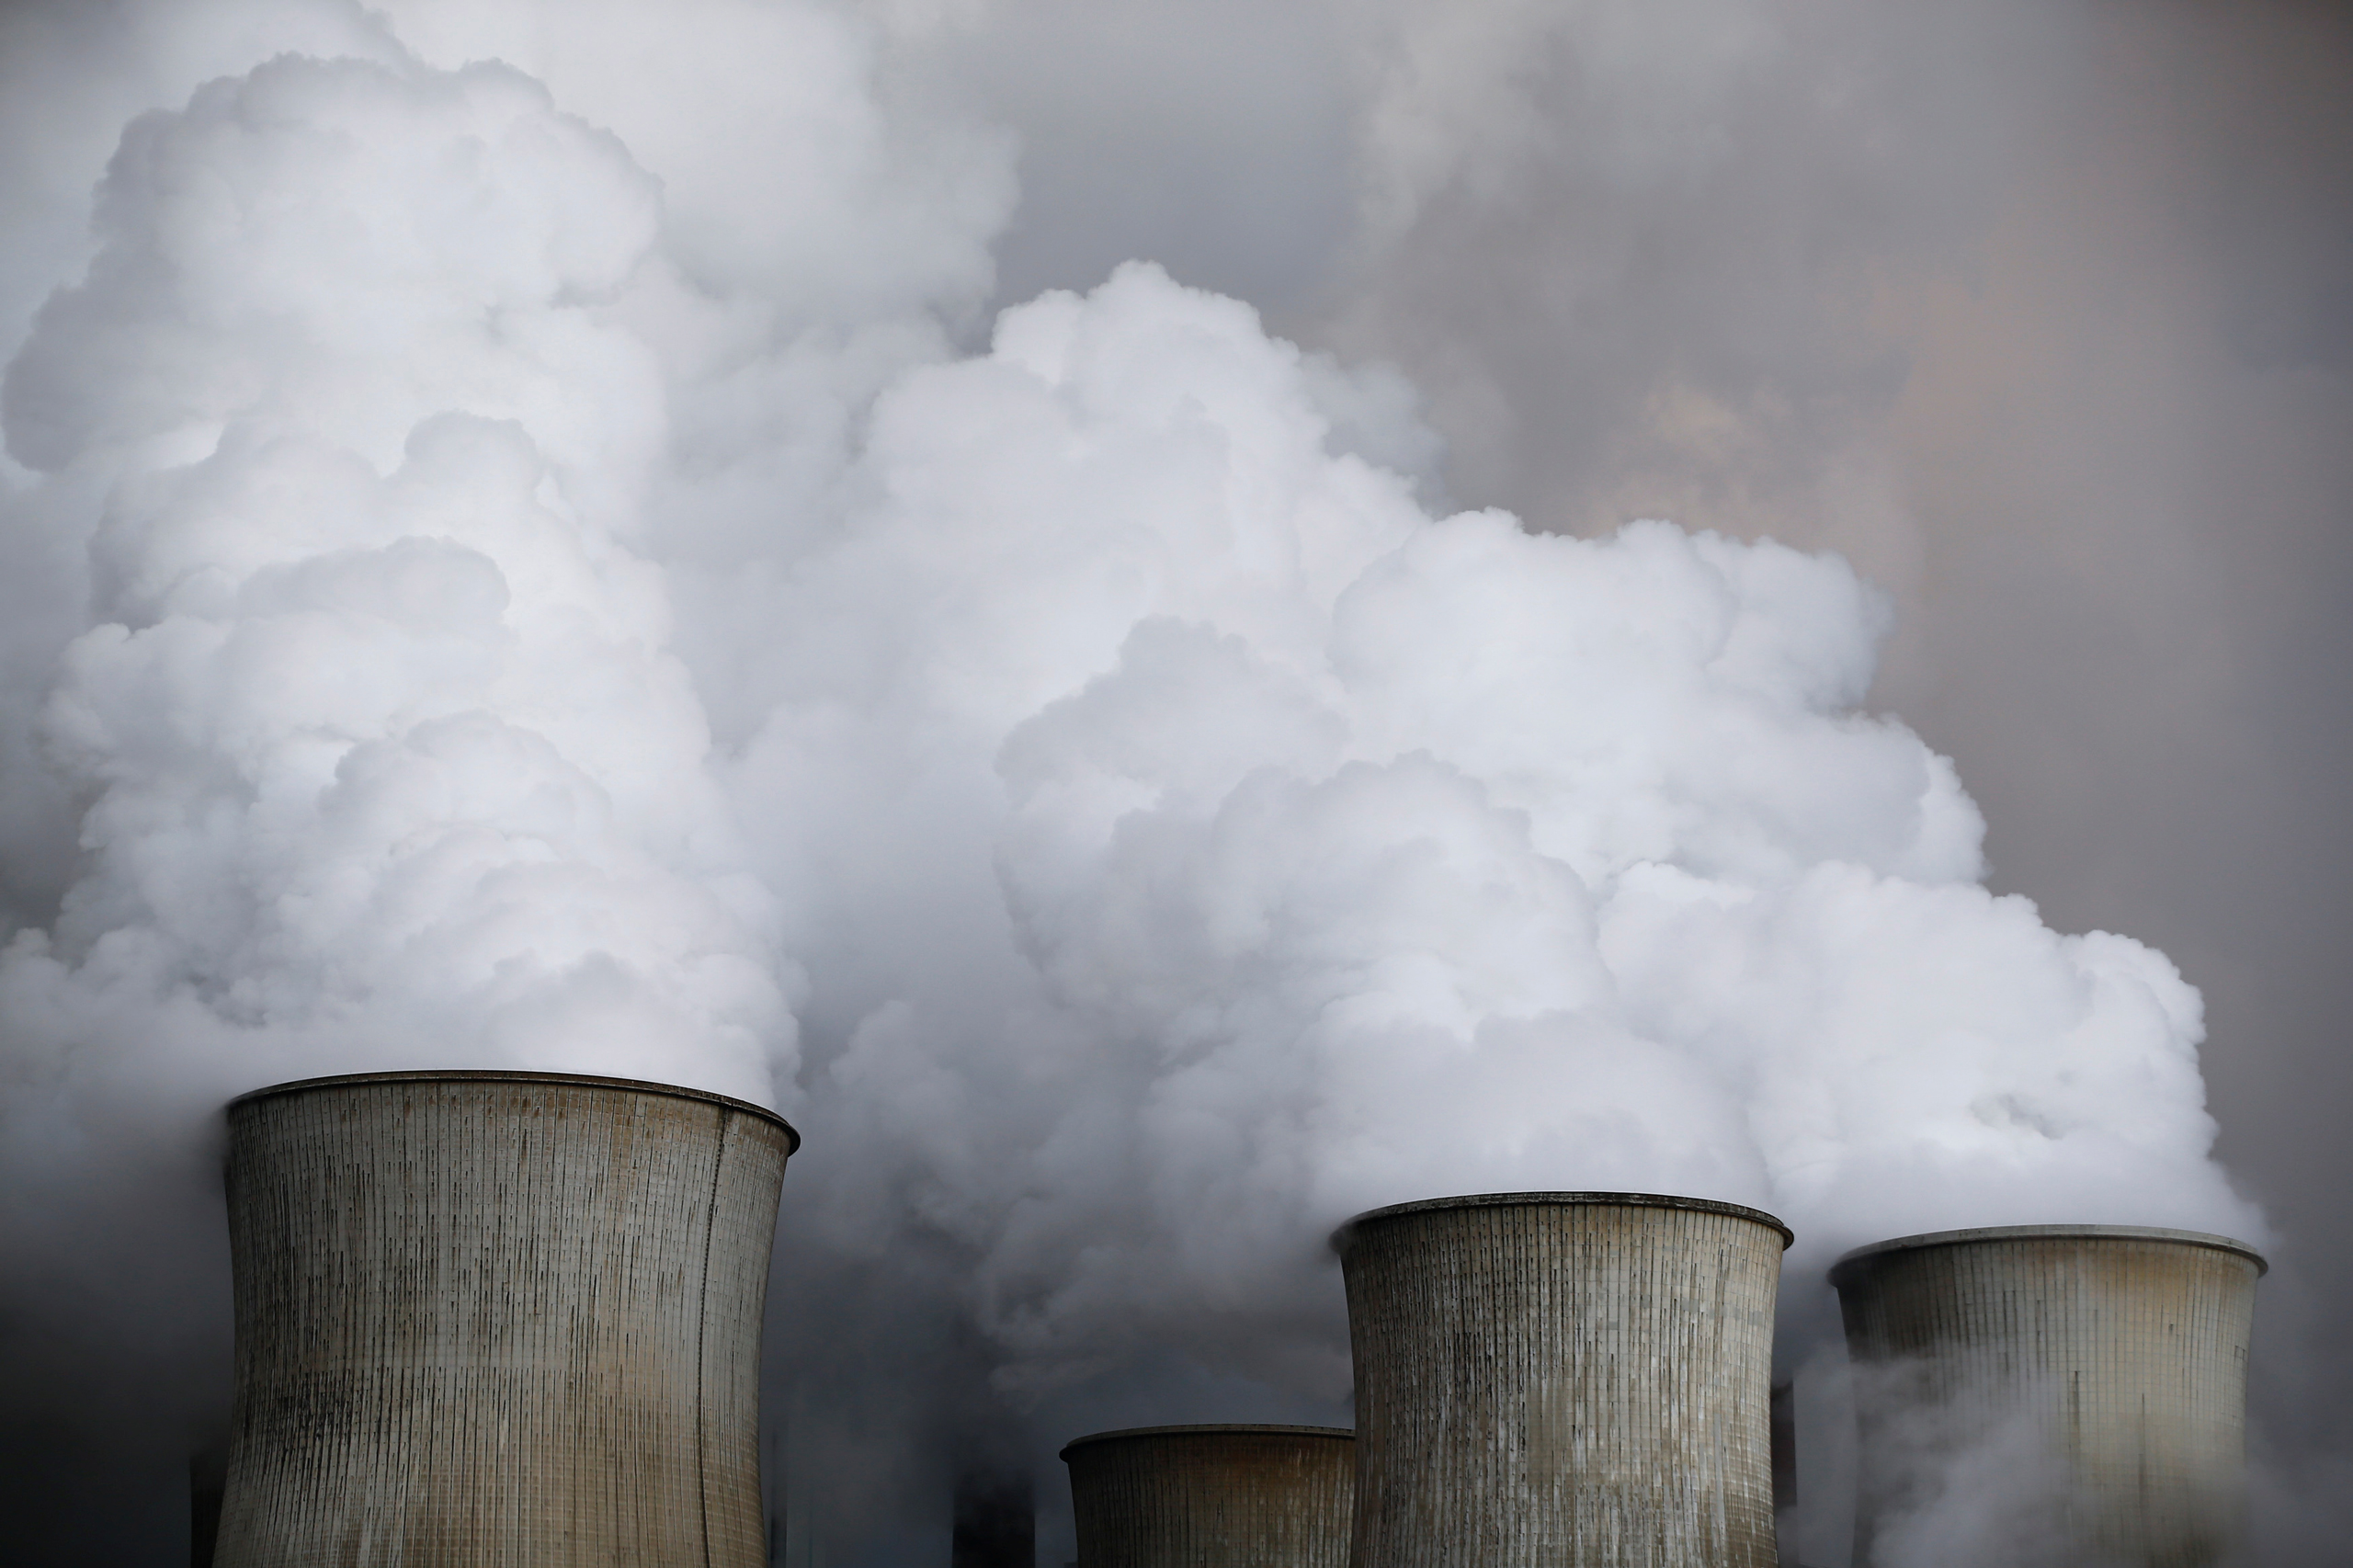 Steam rises from the cooling towers of the coal power plant of RWE, one of Europe's biggest electricity and gas companies in Niederaussem, Germany, on Mar. 3, 2016.